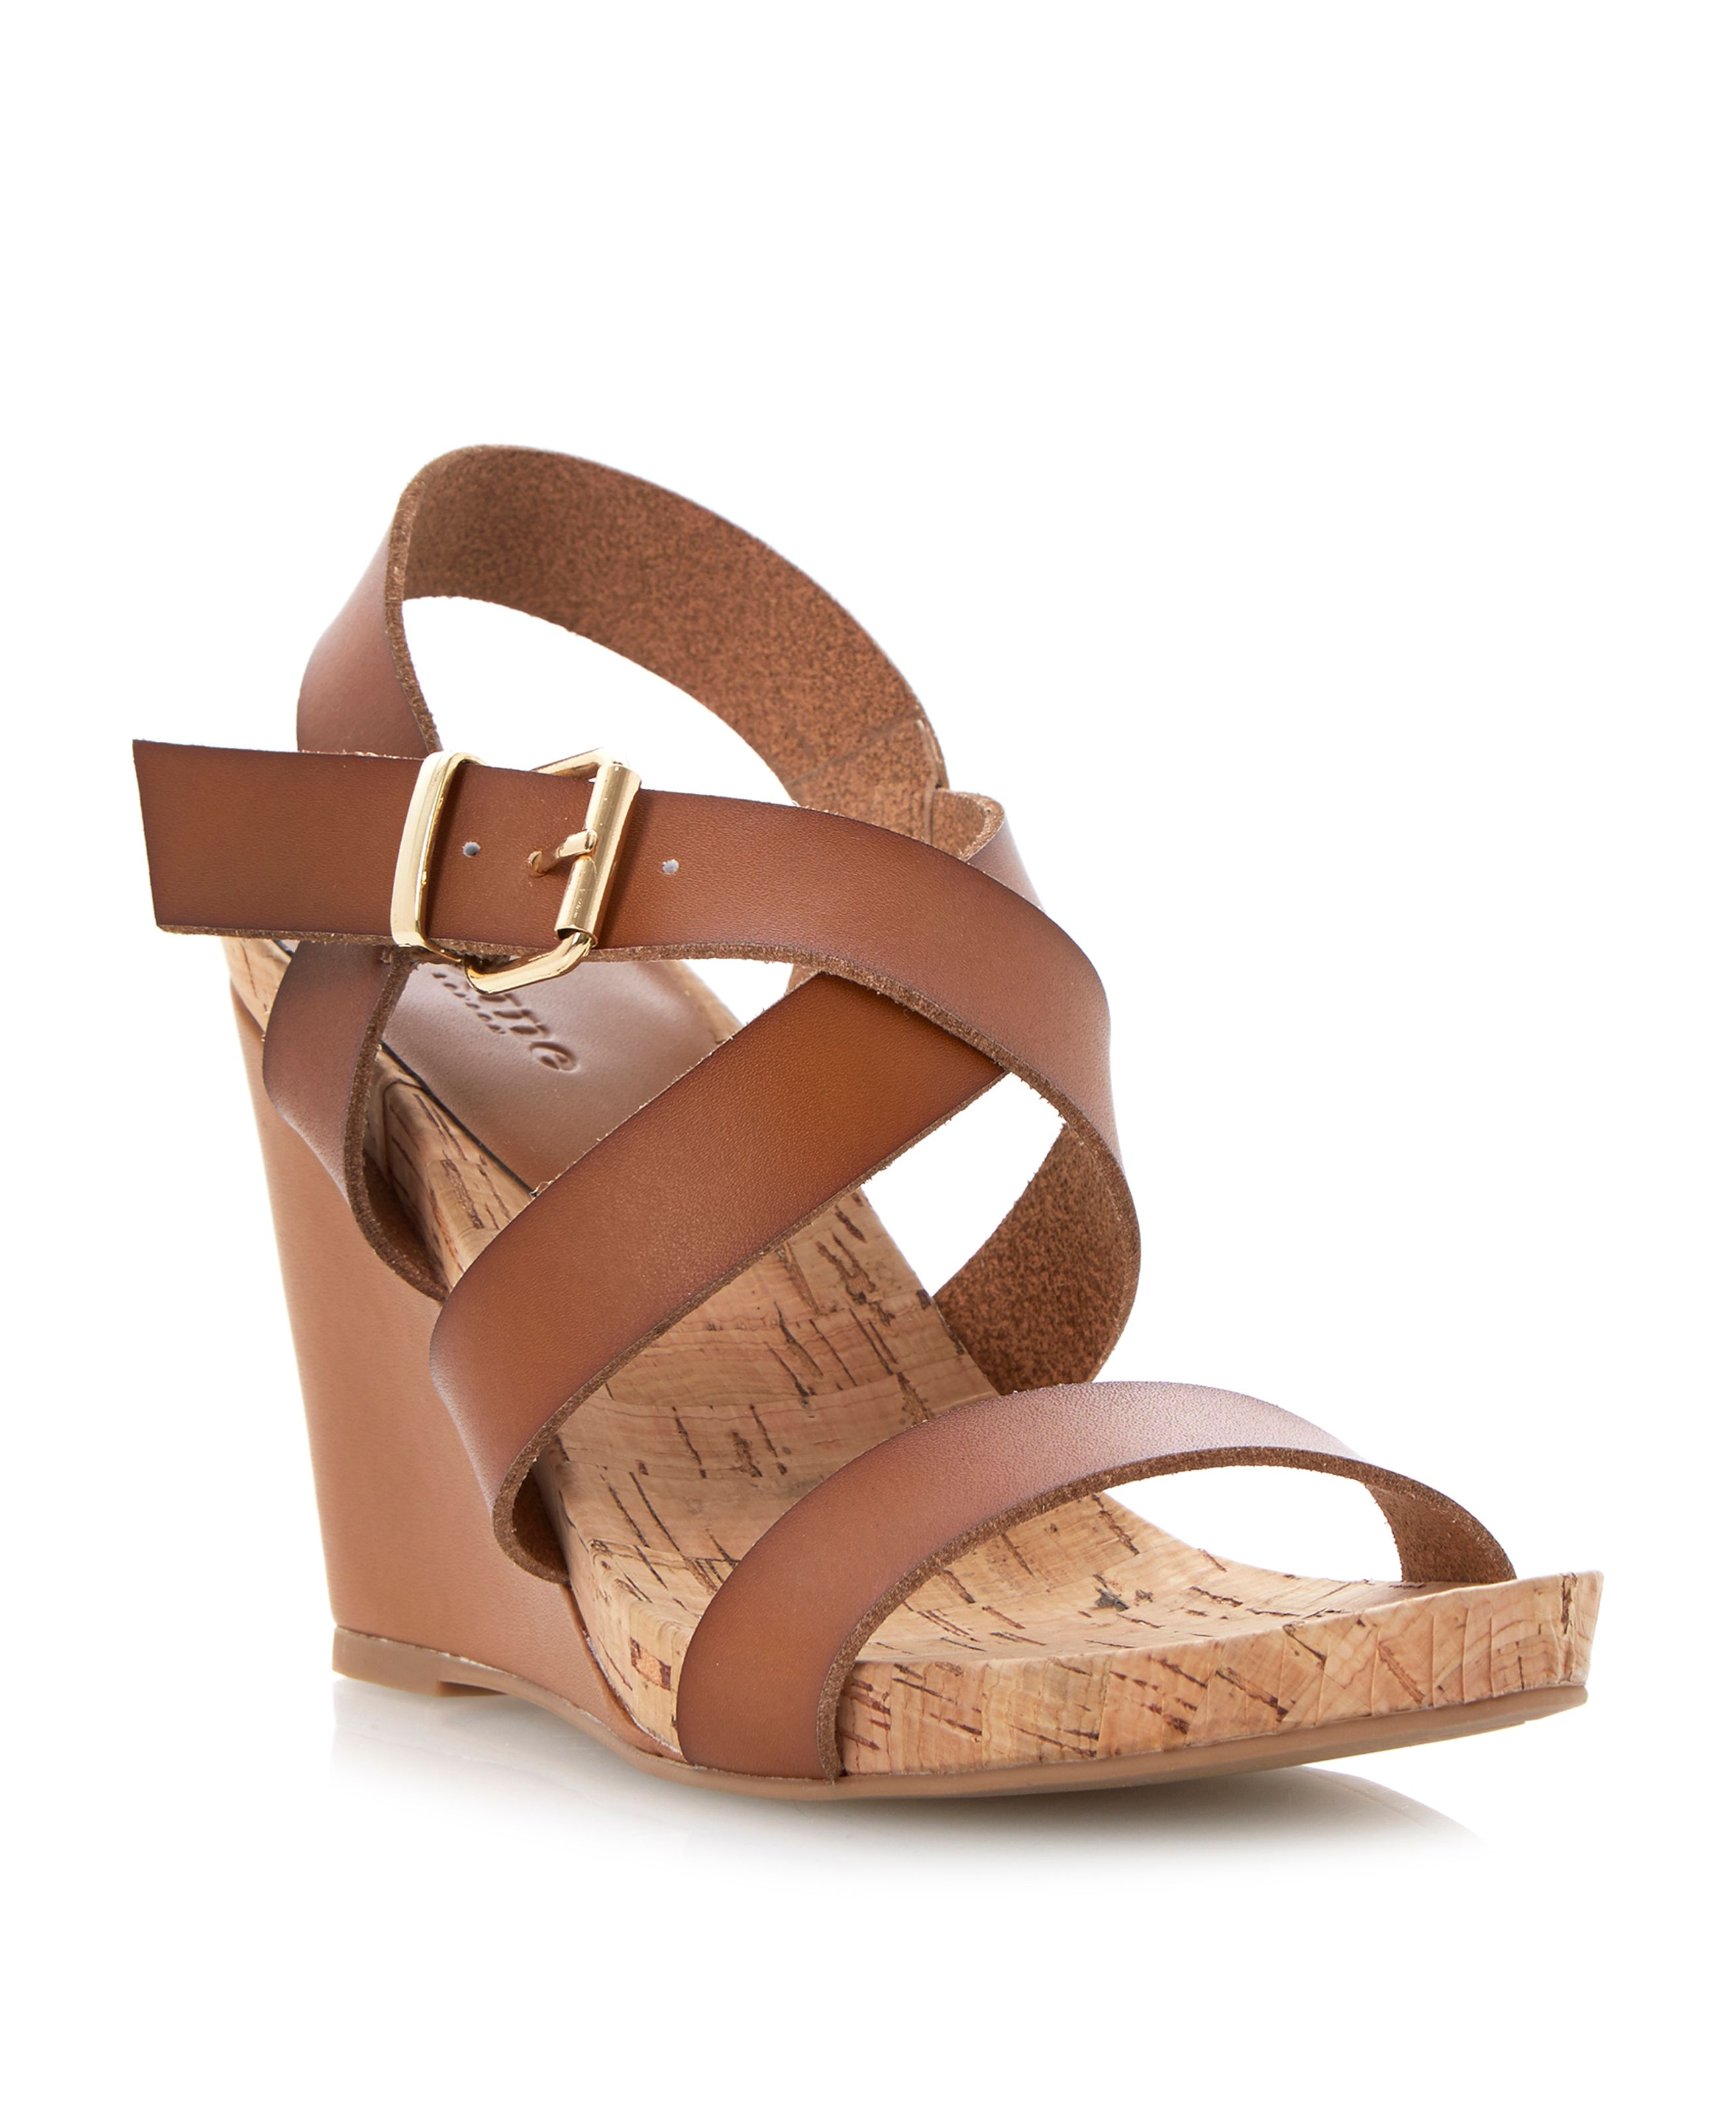 Grainne leather and cork detail wedge sandals